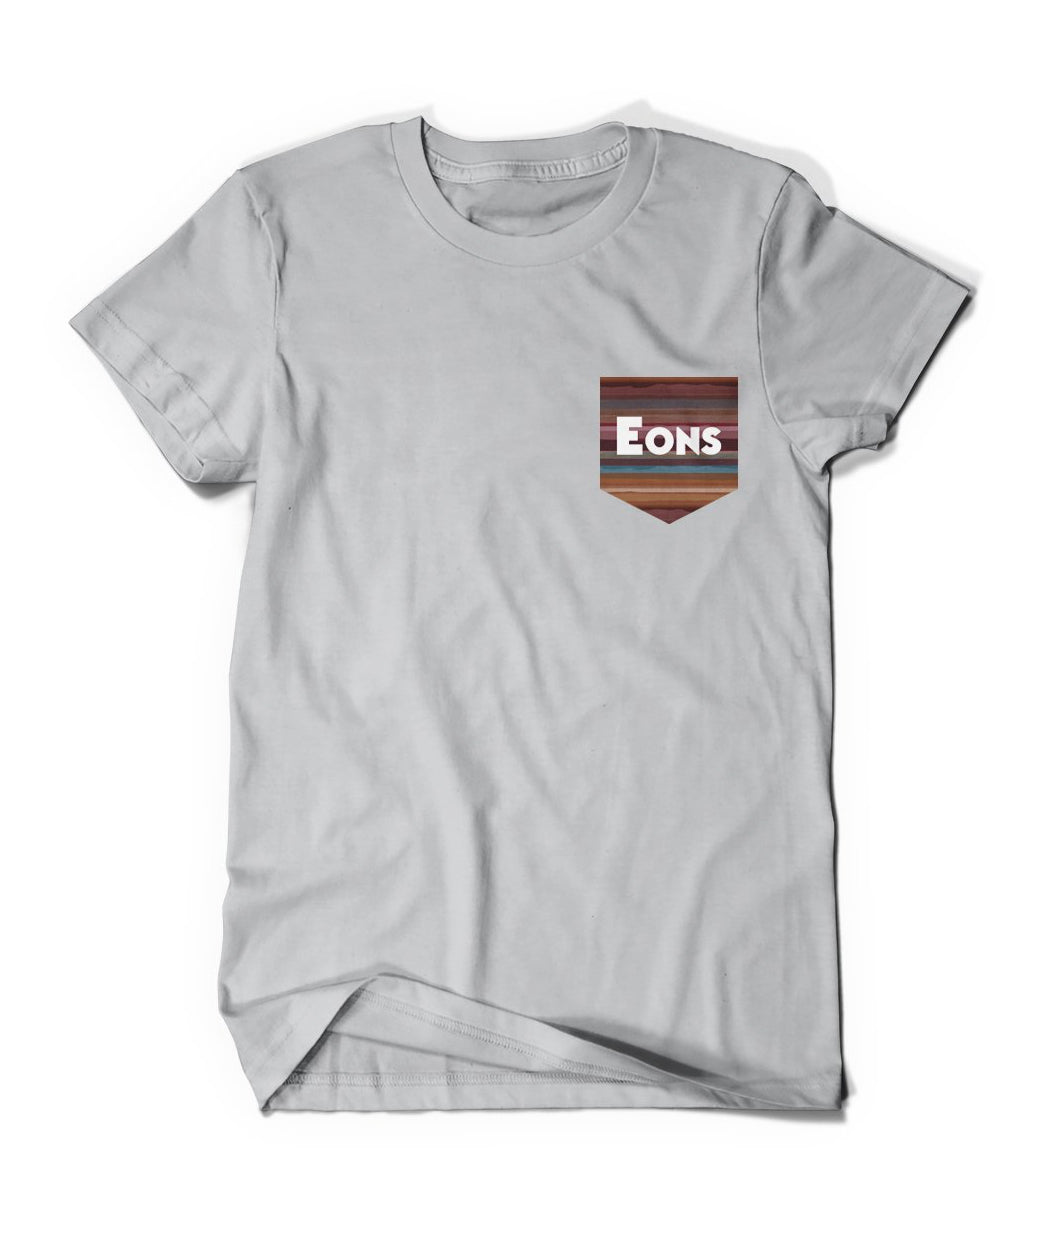 Eons Pocket Shirt